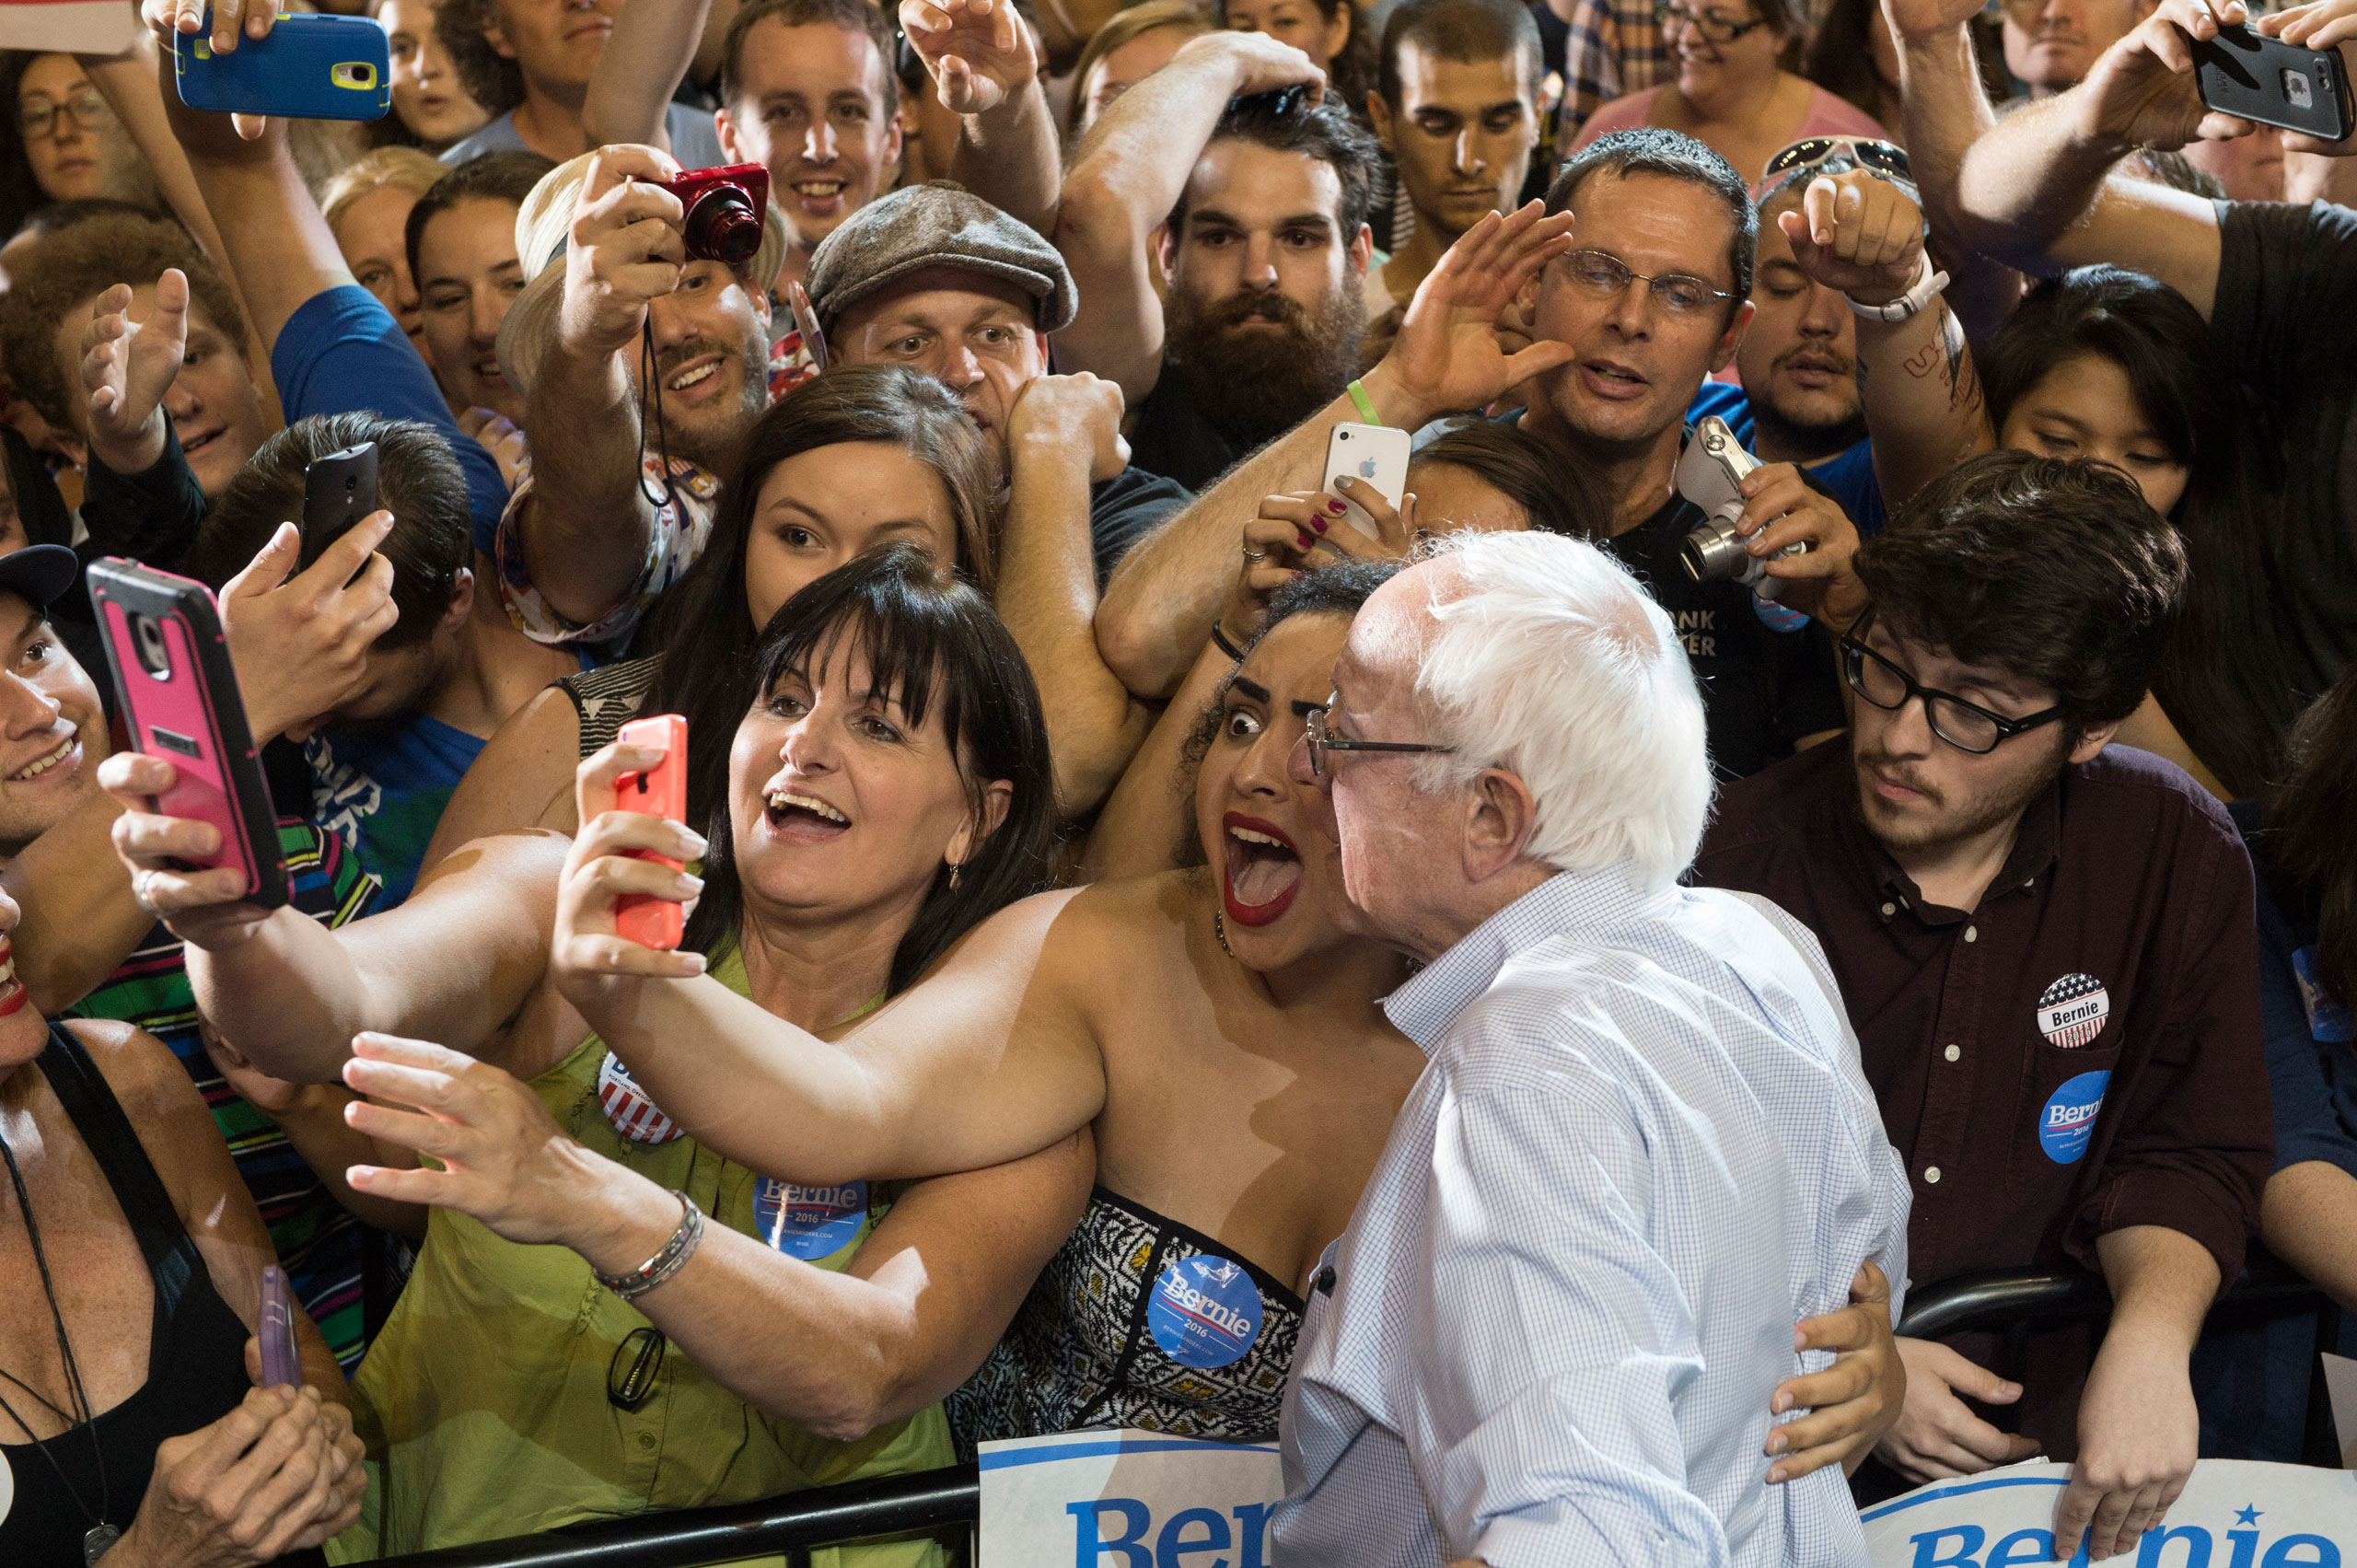 Naomi Scott, center, of McMinnville, Ore., takes a picture with Democratic presidential candidate Senator Bernie Sanders, I-Vt., at a rally at the Moda Center in Portland, Ore. Aug. 9, 2015.